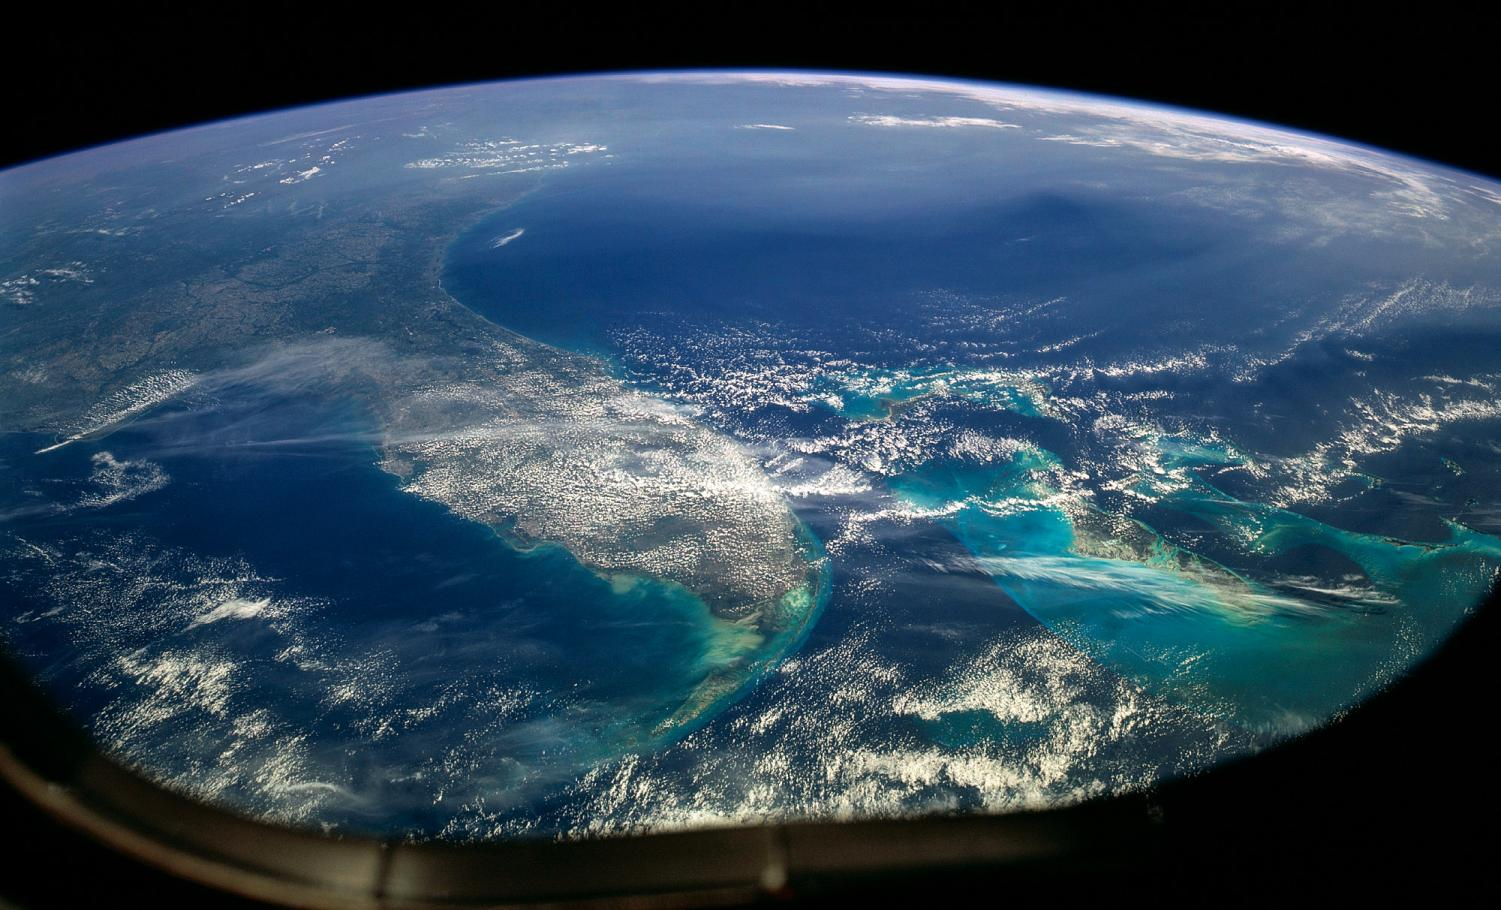 A view of Florida from space. Photo courtesy of Wikimedia Commons